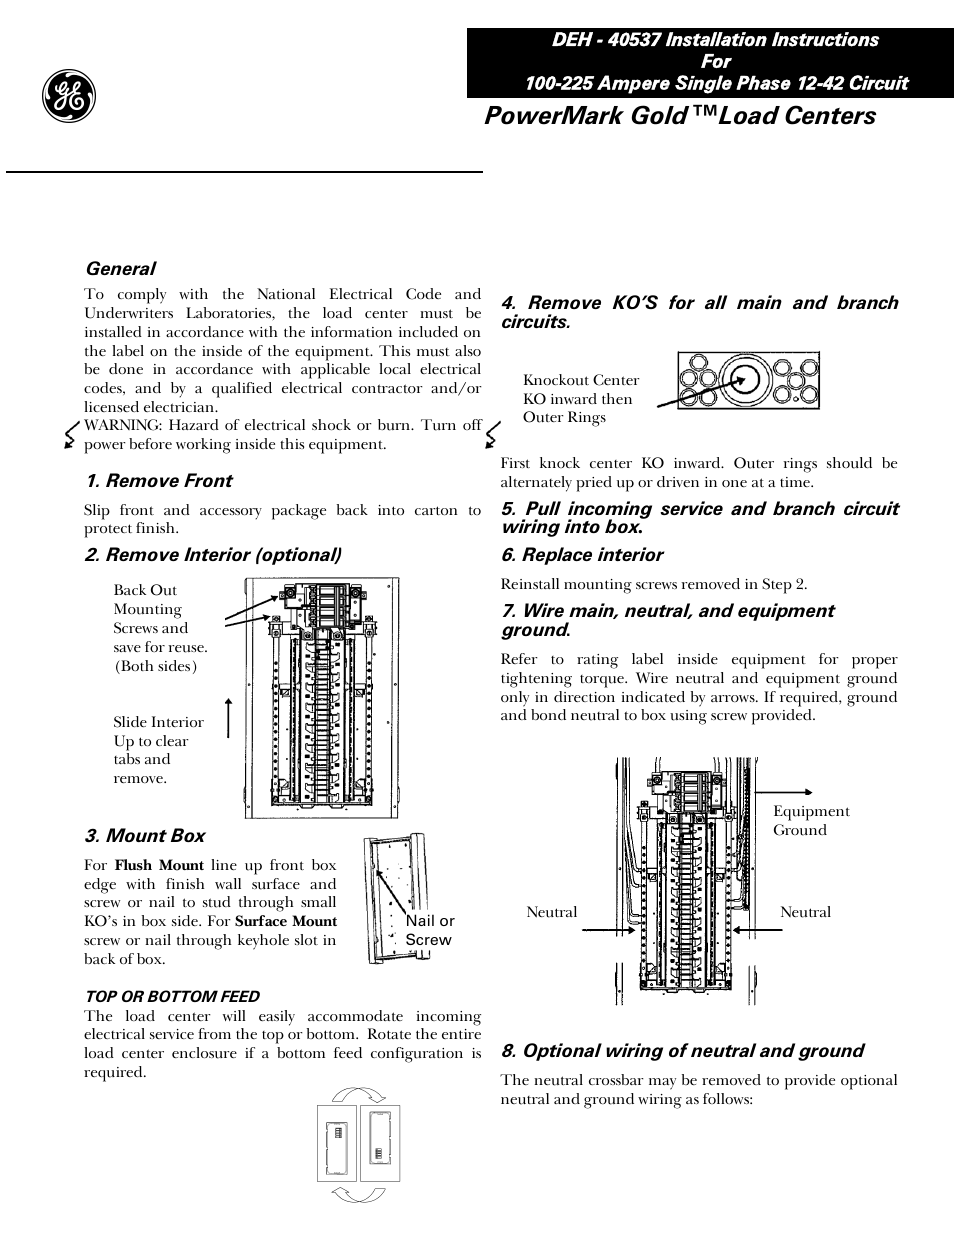 ge industrial solutions power mark gold load centers page1?resize=665%2C861 qo2l30s load center wiring diagram wiring diagram qo2l30s load center wiring diagram at n-0.co